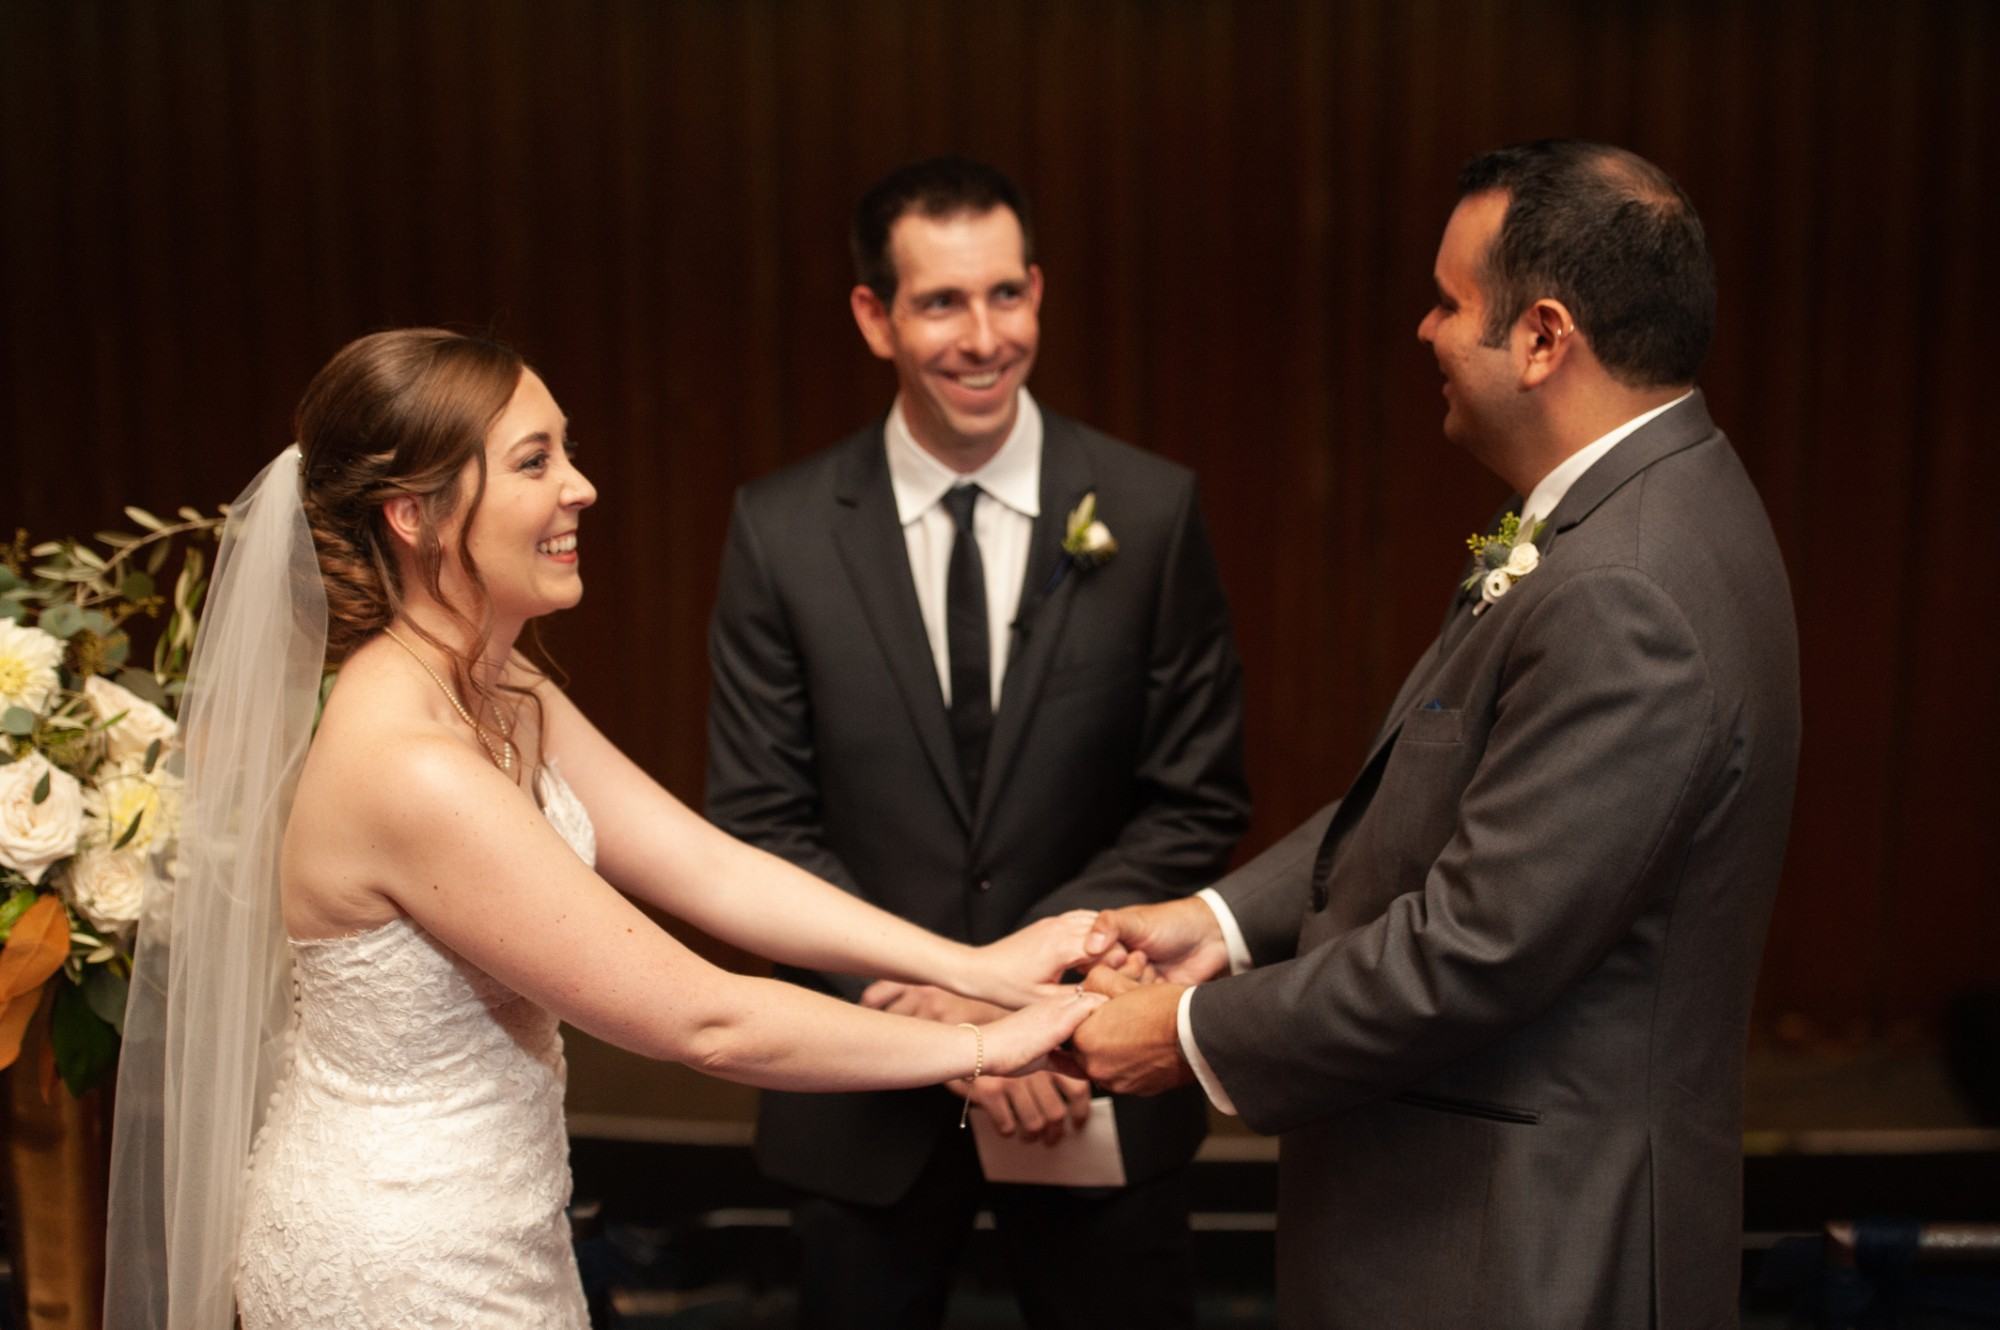 Chicago Wedding | Month of Coordination | Madison, WI Wedding | Orpheum Theatre Wedding | Chicago Wedding Planner | Notre Dame Ultimate | Notre Dame Wedding | Your Day by MK